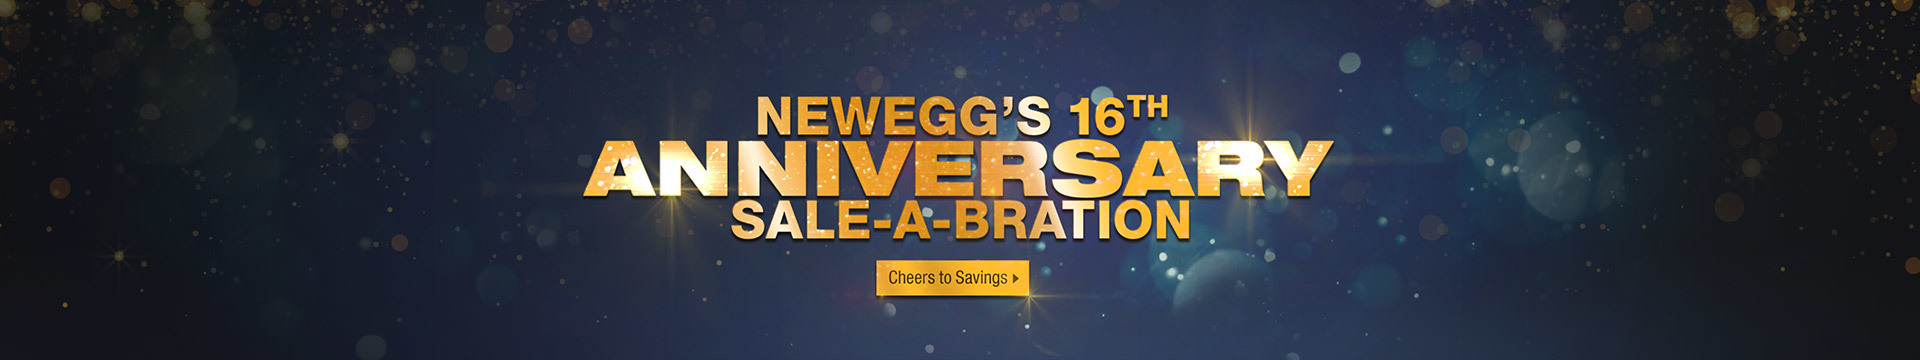 16th Anniversary Sale-A-Bration